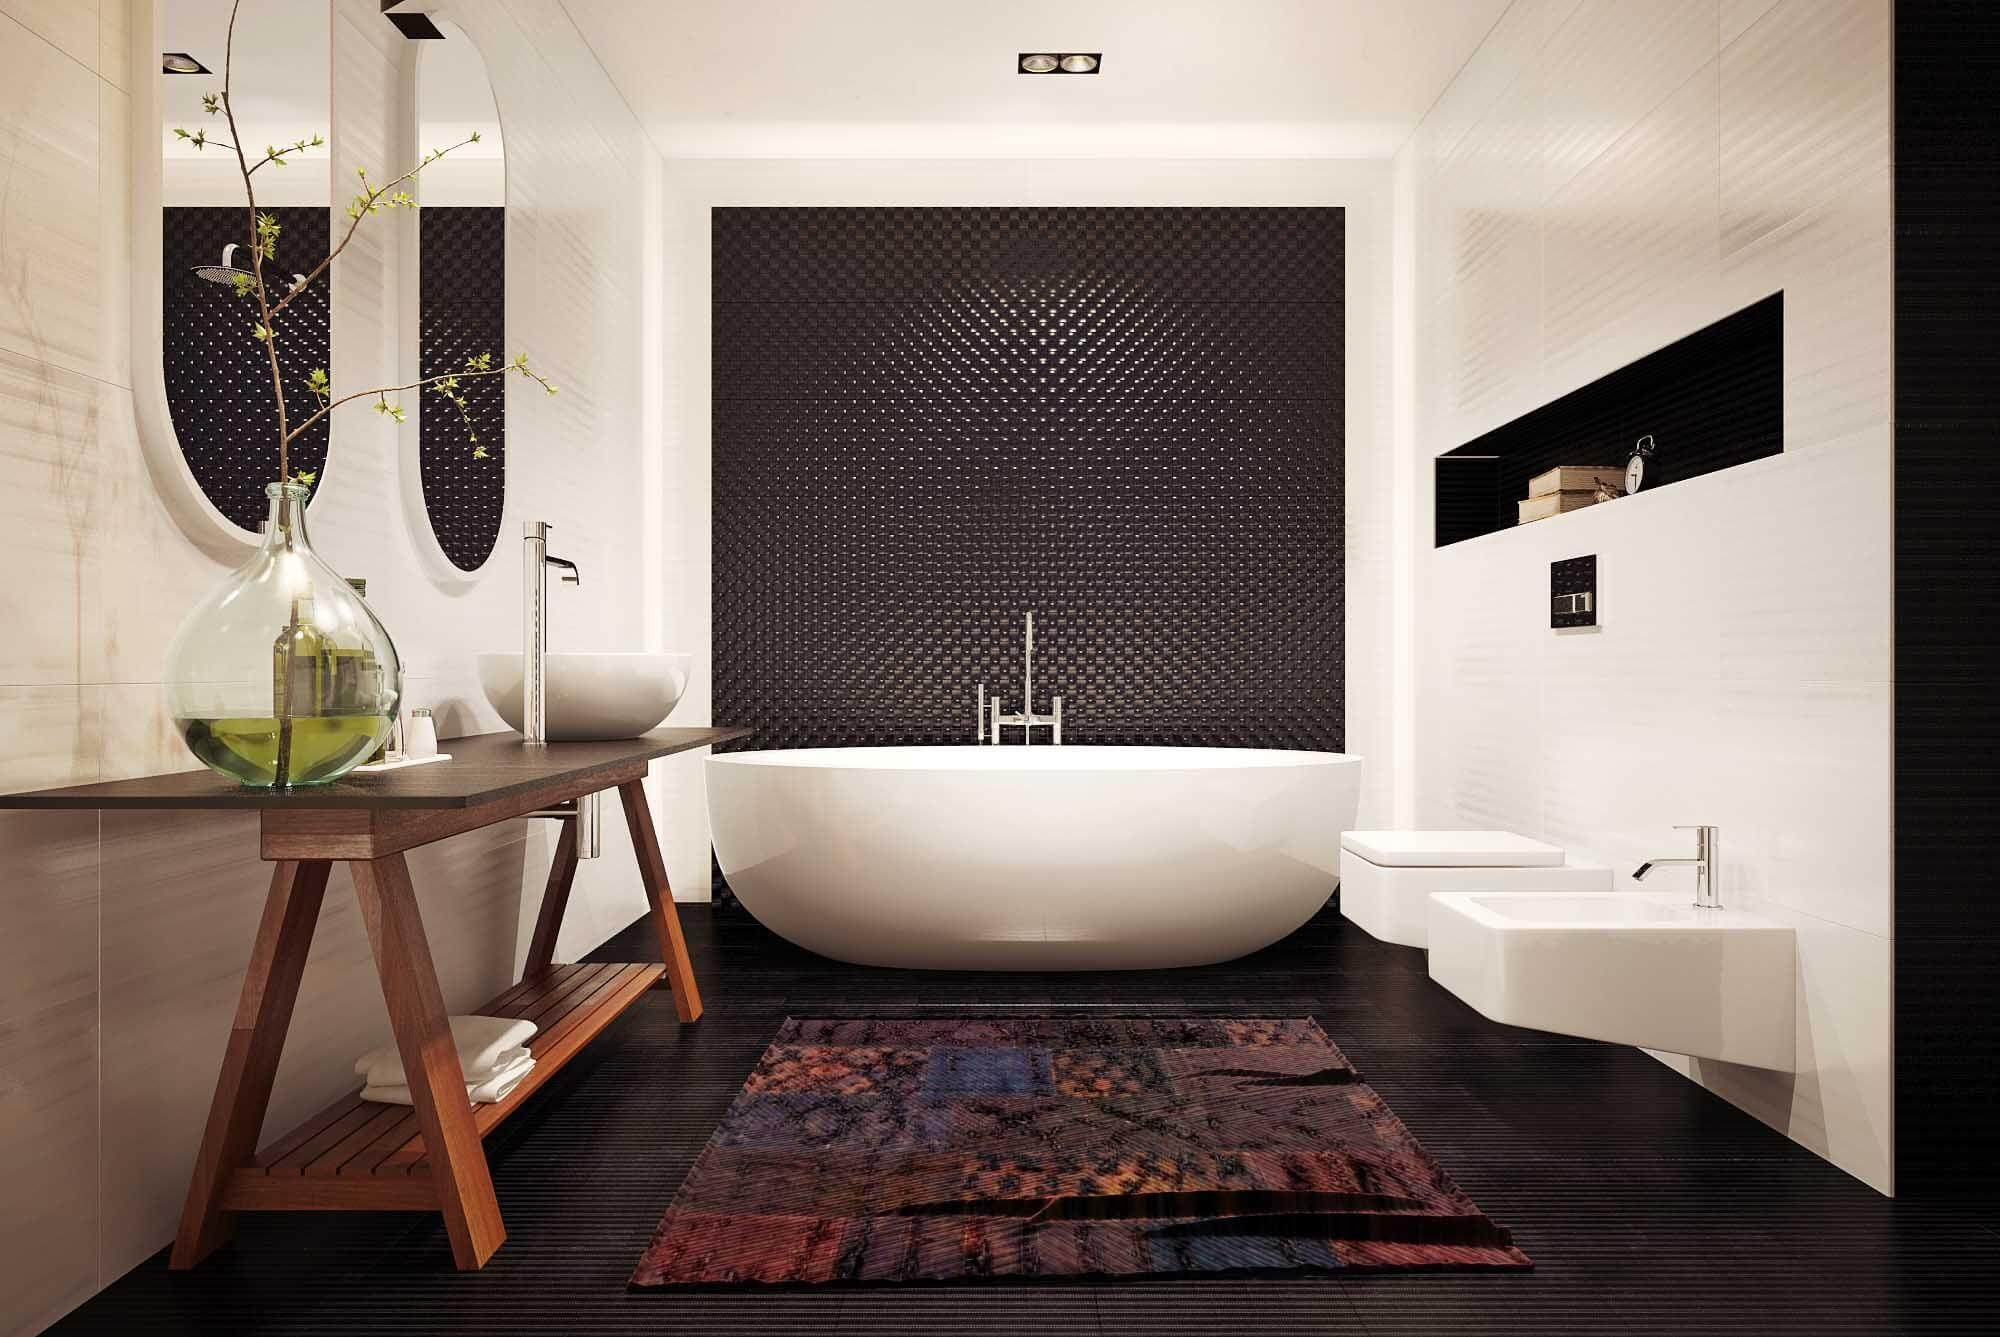 Bathroom Design 2020: Main Trends